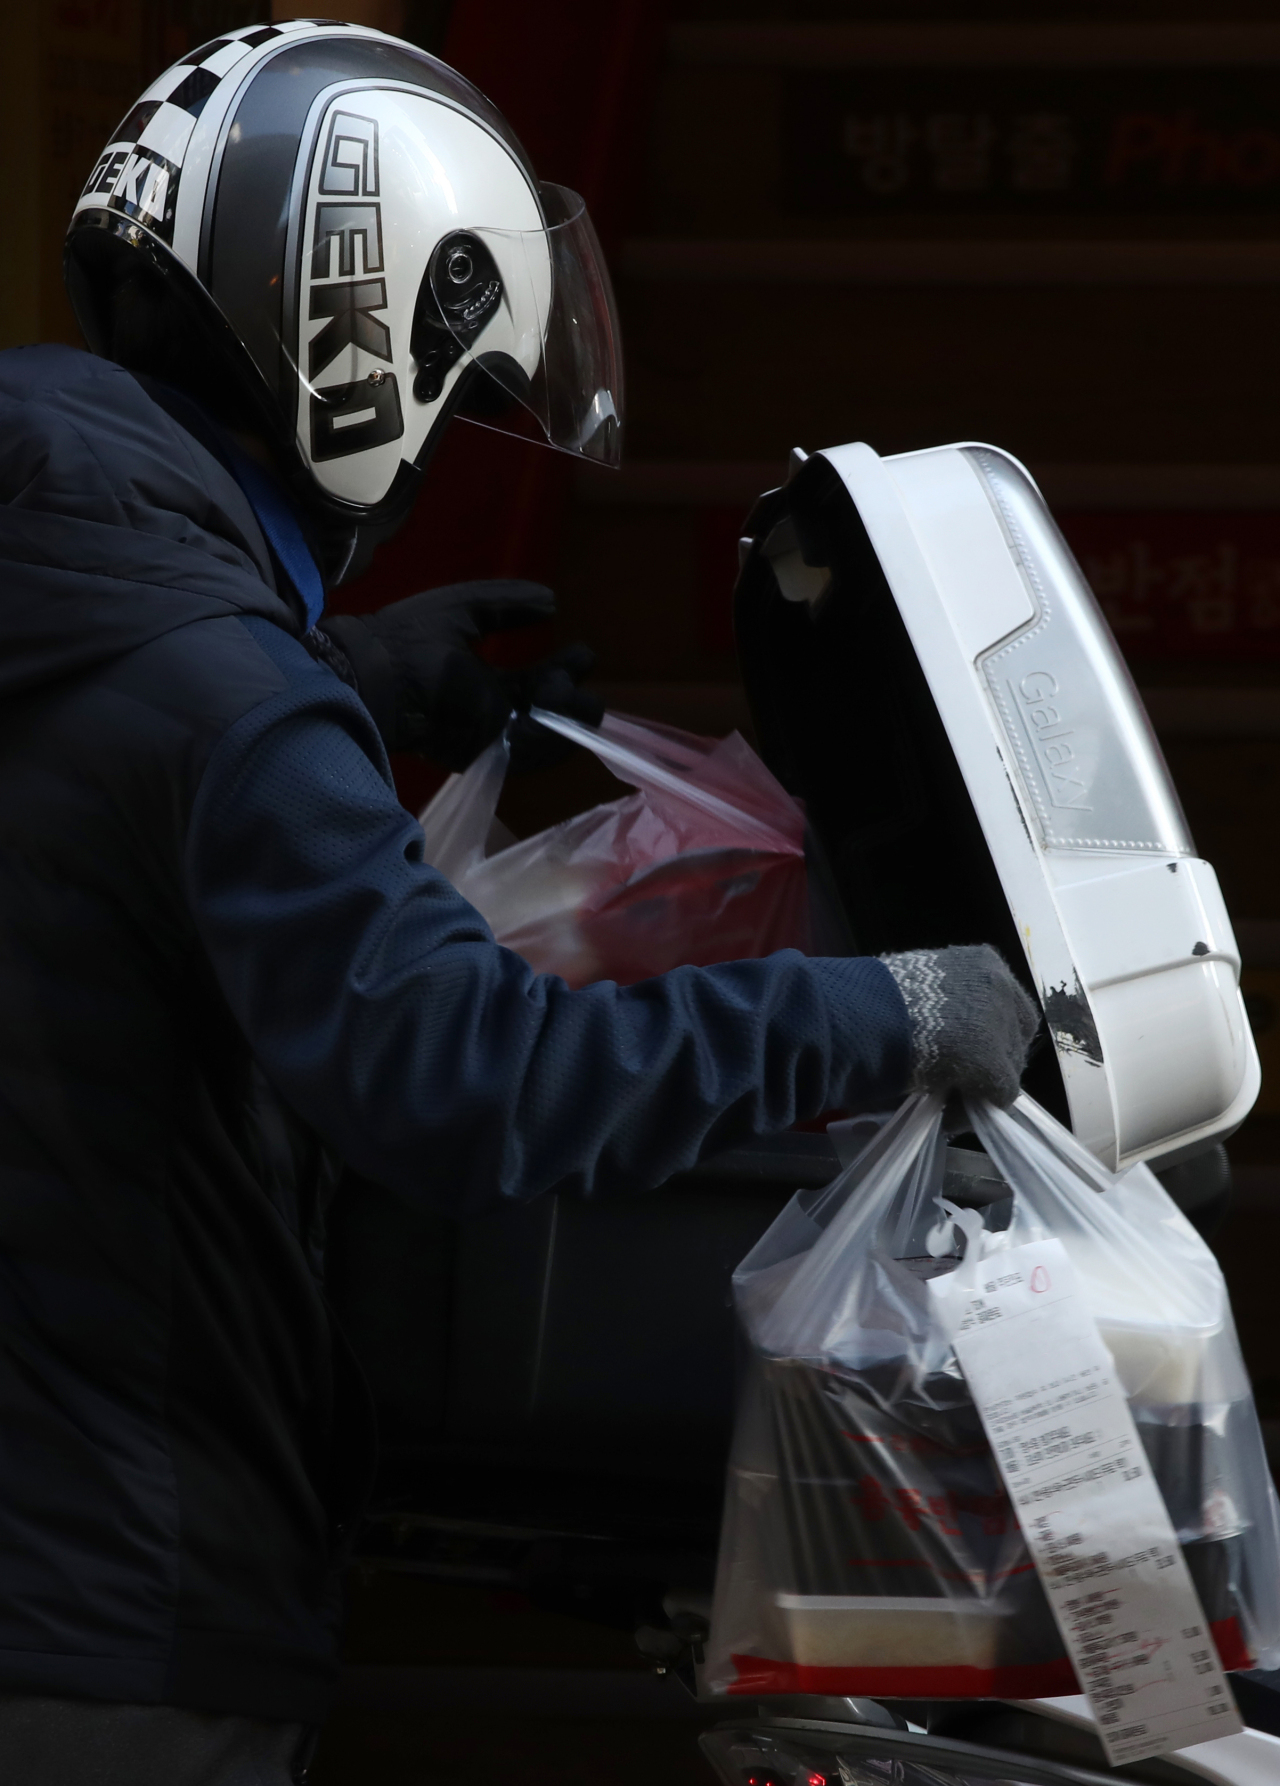 A delivery service worker carries packaged meals in Myeong-dong, one of the busiest shopping districts in Seoul, on Thursday, amid a surge in coronavirus cases. South Korea has imposed a nationwide ban on gatherings of five or more people as part of efforts to stem the spread of the coronavirus. (Yonhap)